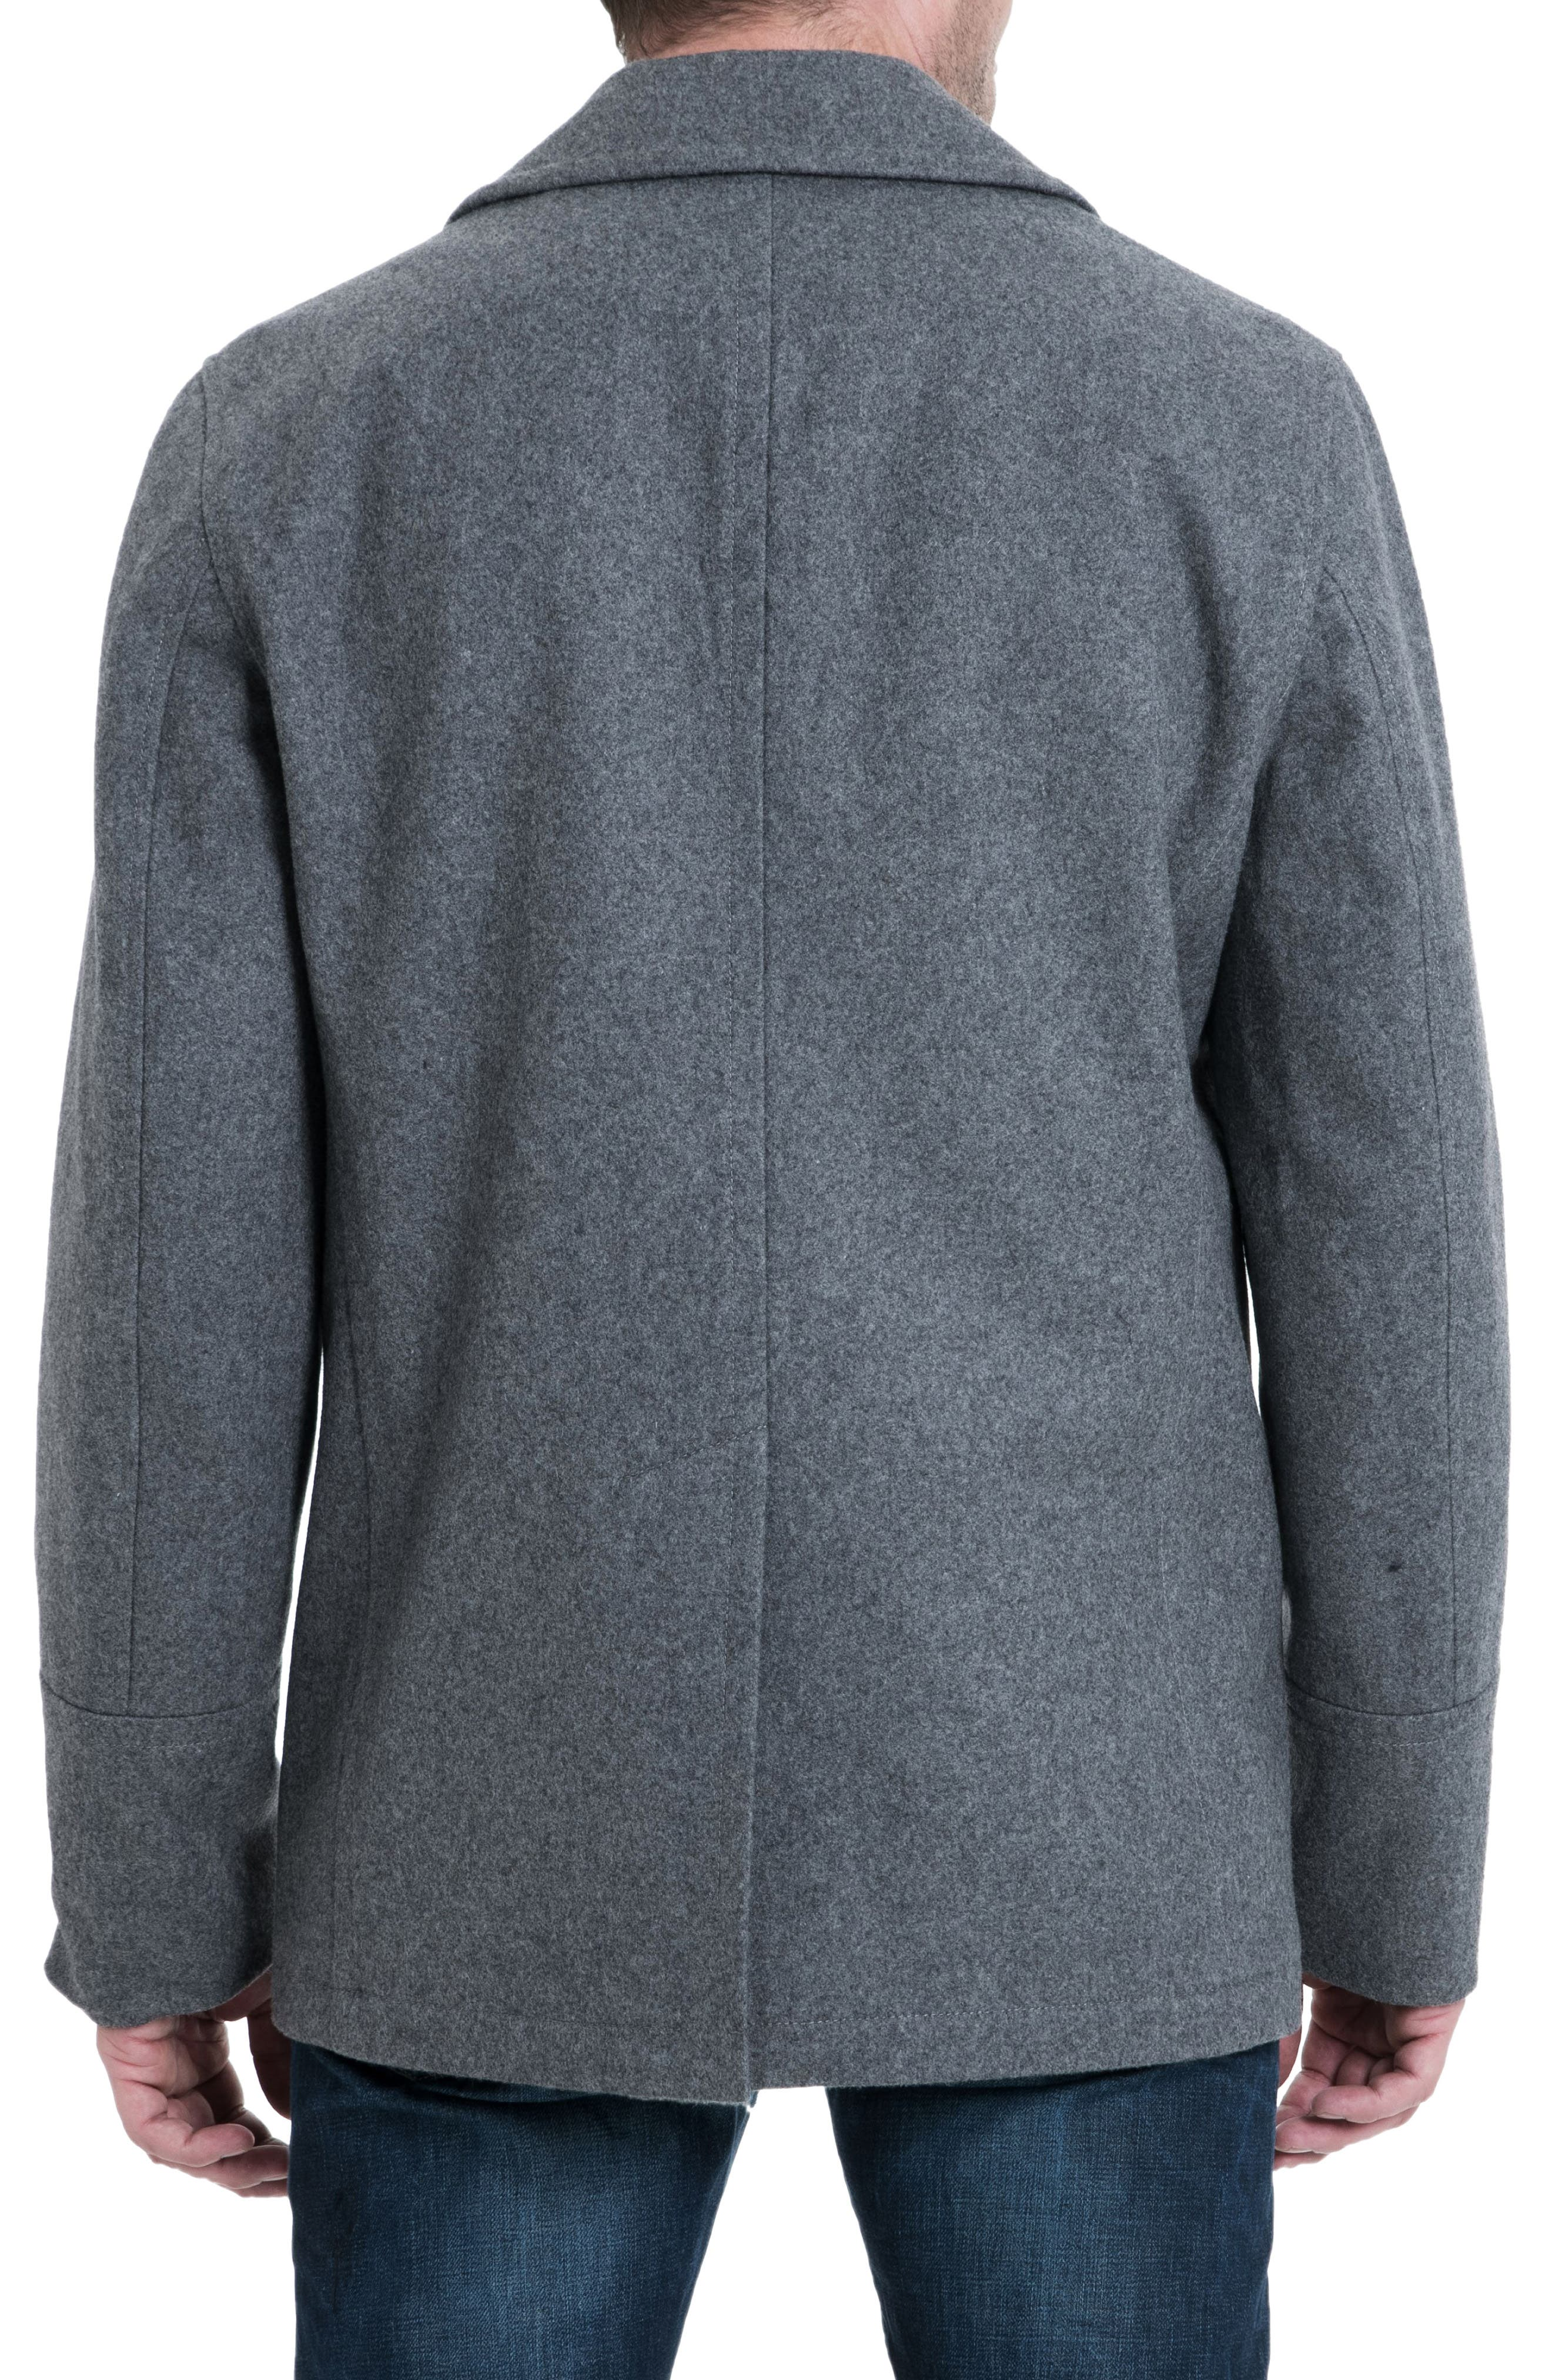 Wool Blend Double Breasted Peacoat,                             Alternate thumbnail 2, color,                             MEDIUM GREY HEATHER